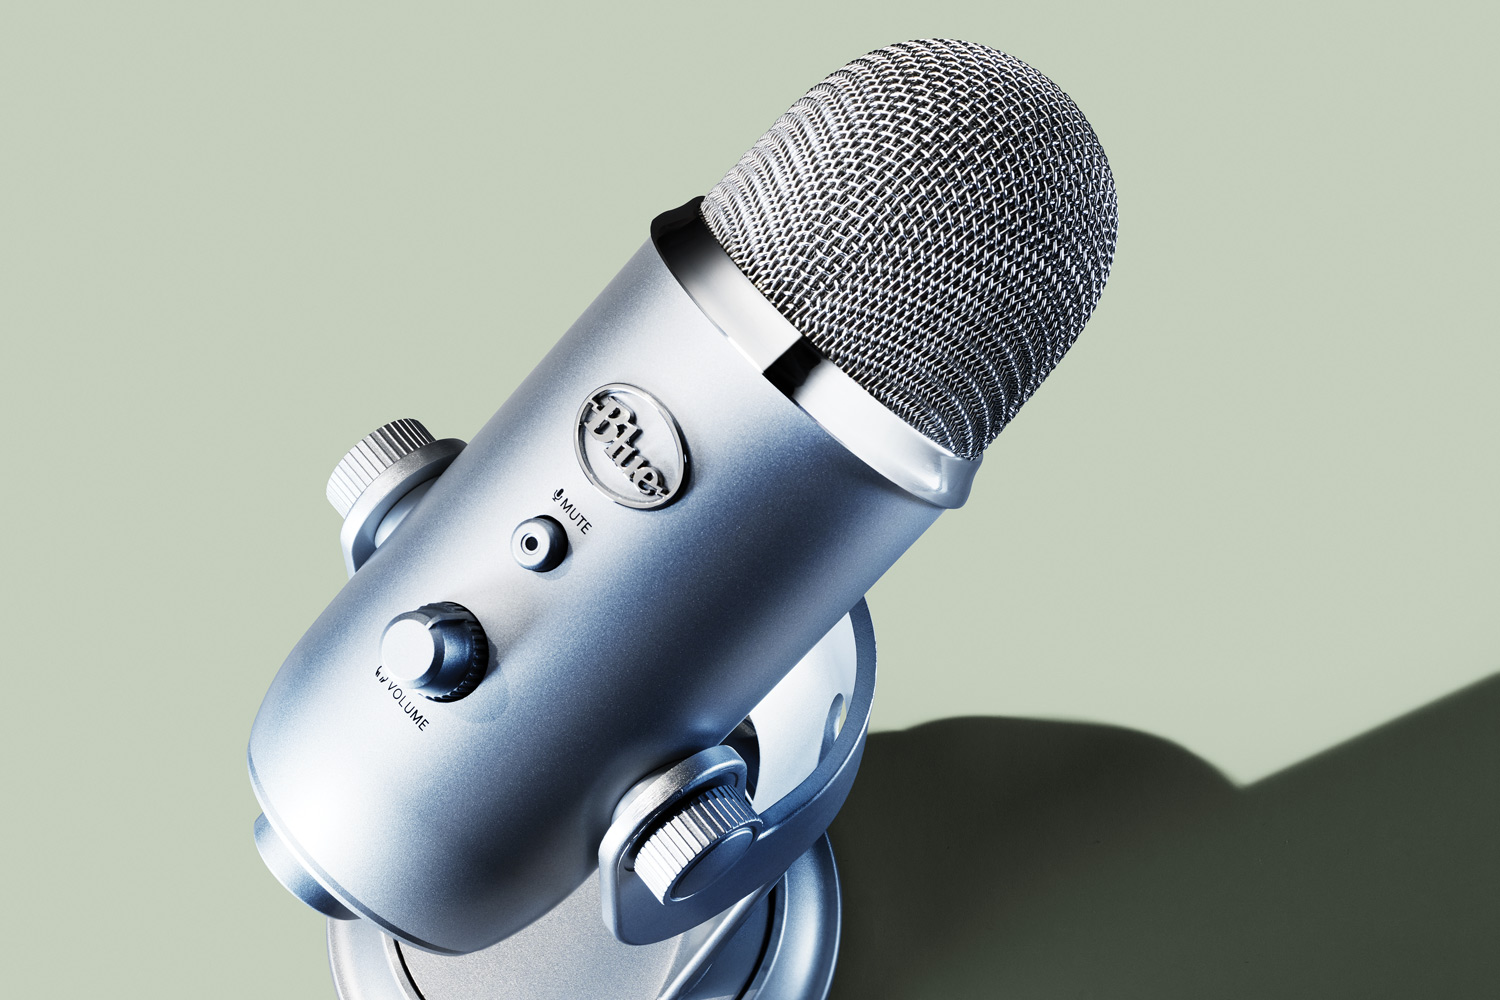 Essential gear to start your own podcast studio